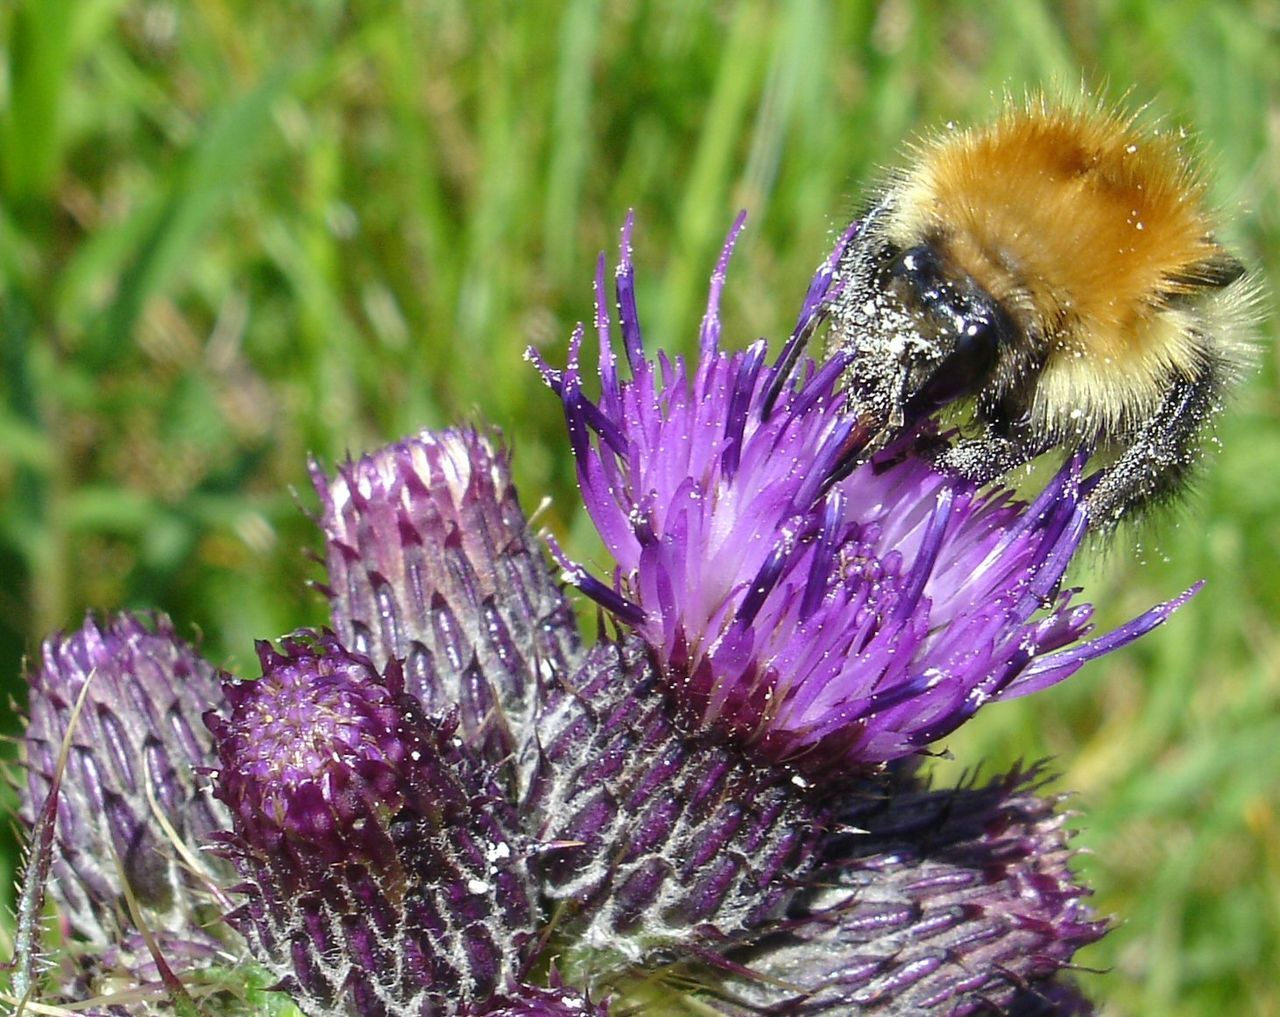 flower, purple, nature, insect, beauty in nature, one animal, growth, fragility, day, animal themes, no people, animals in the wild, petal, outdoors, plant, close-up, focus on foreground, thistle, flower head, freshness, bee, pollination